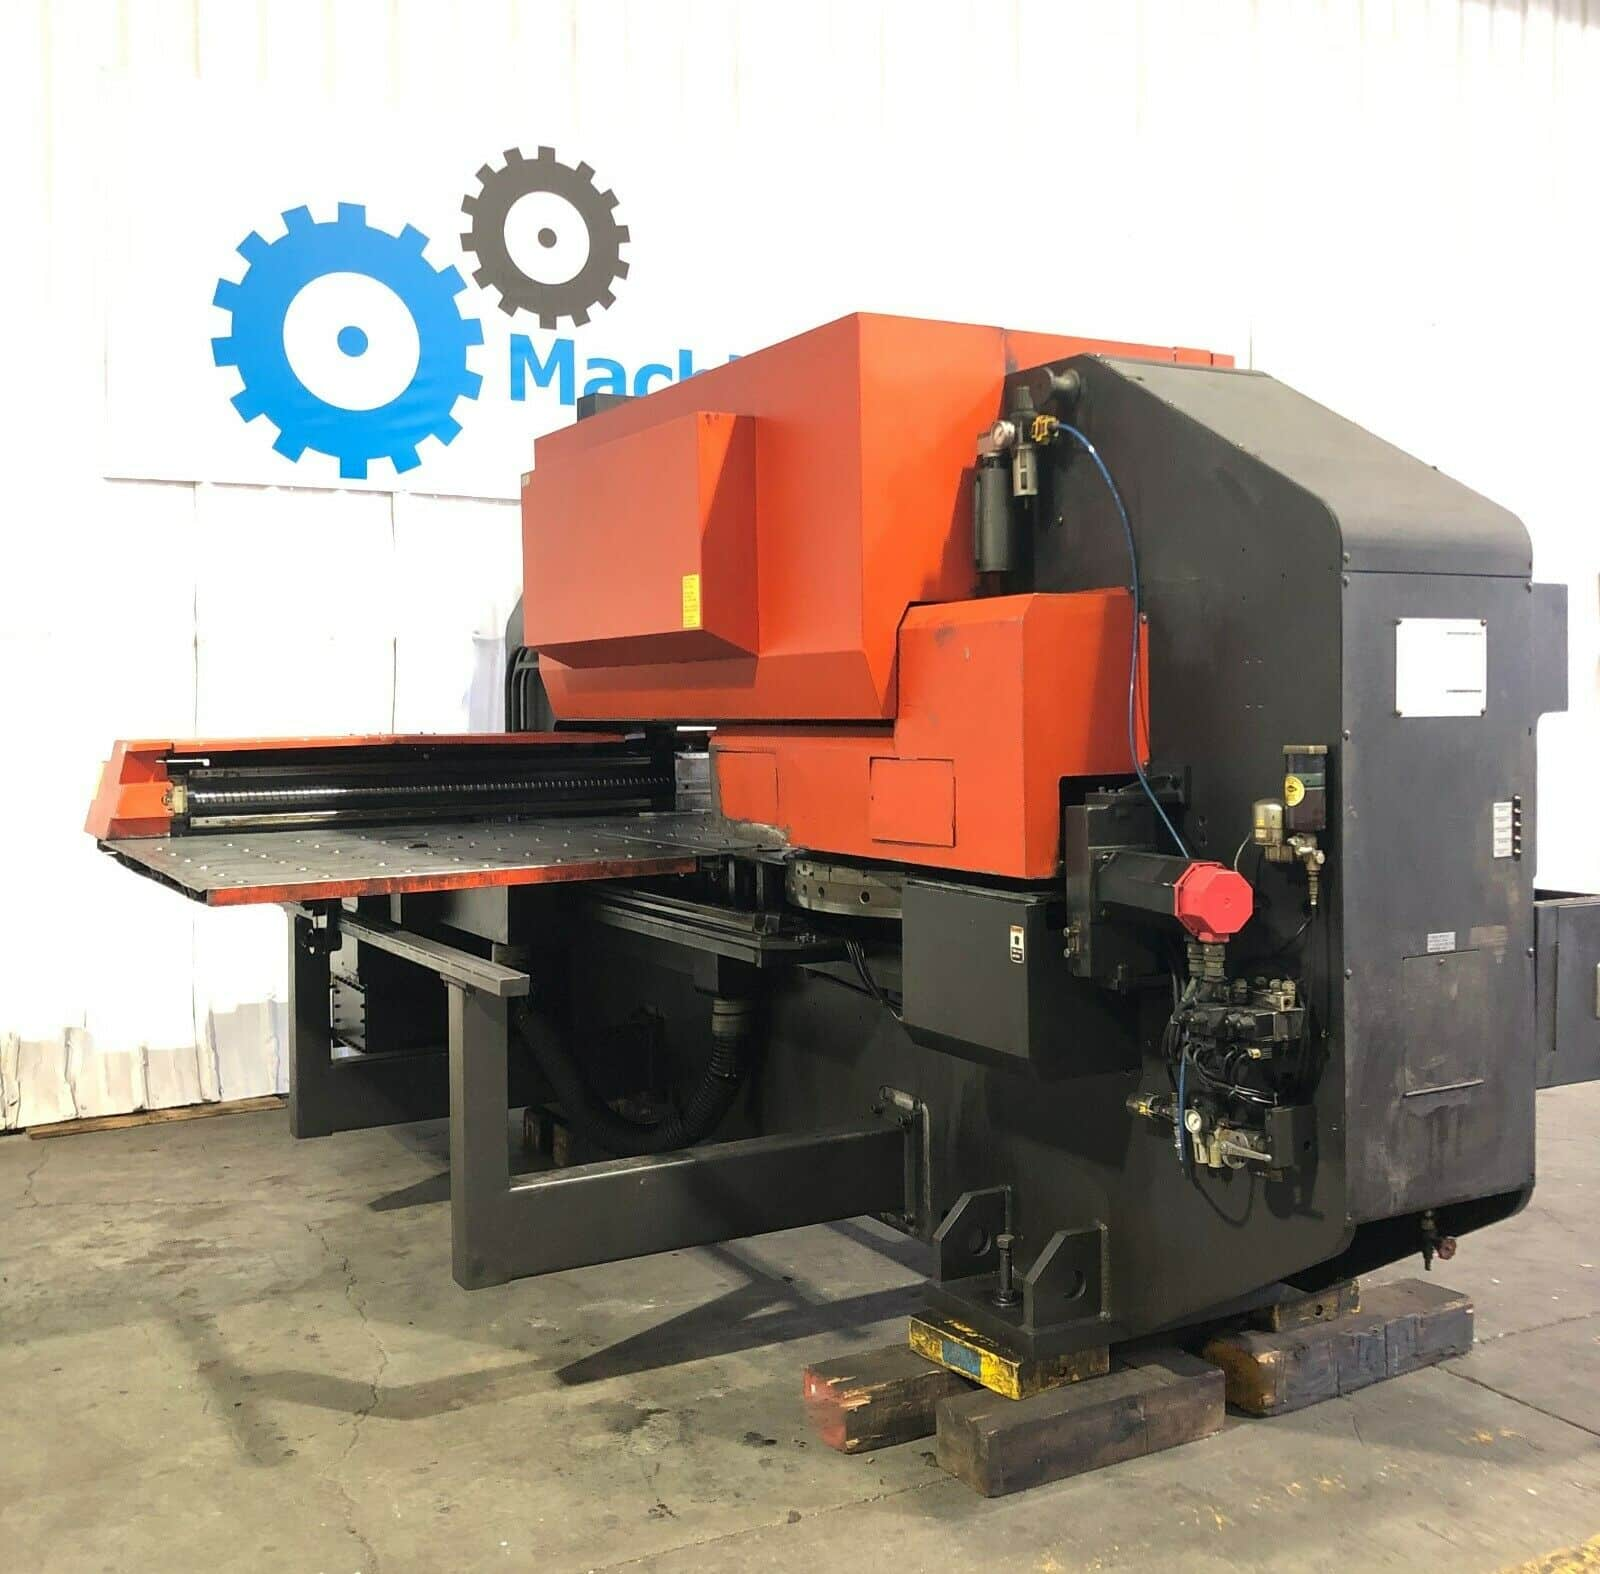 Amada Pega 357 CNC Turret Punch Press - MachineStation